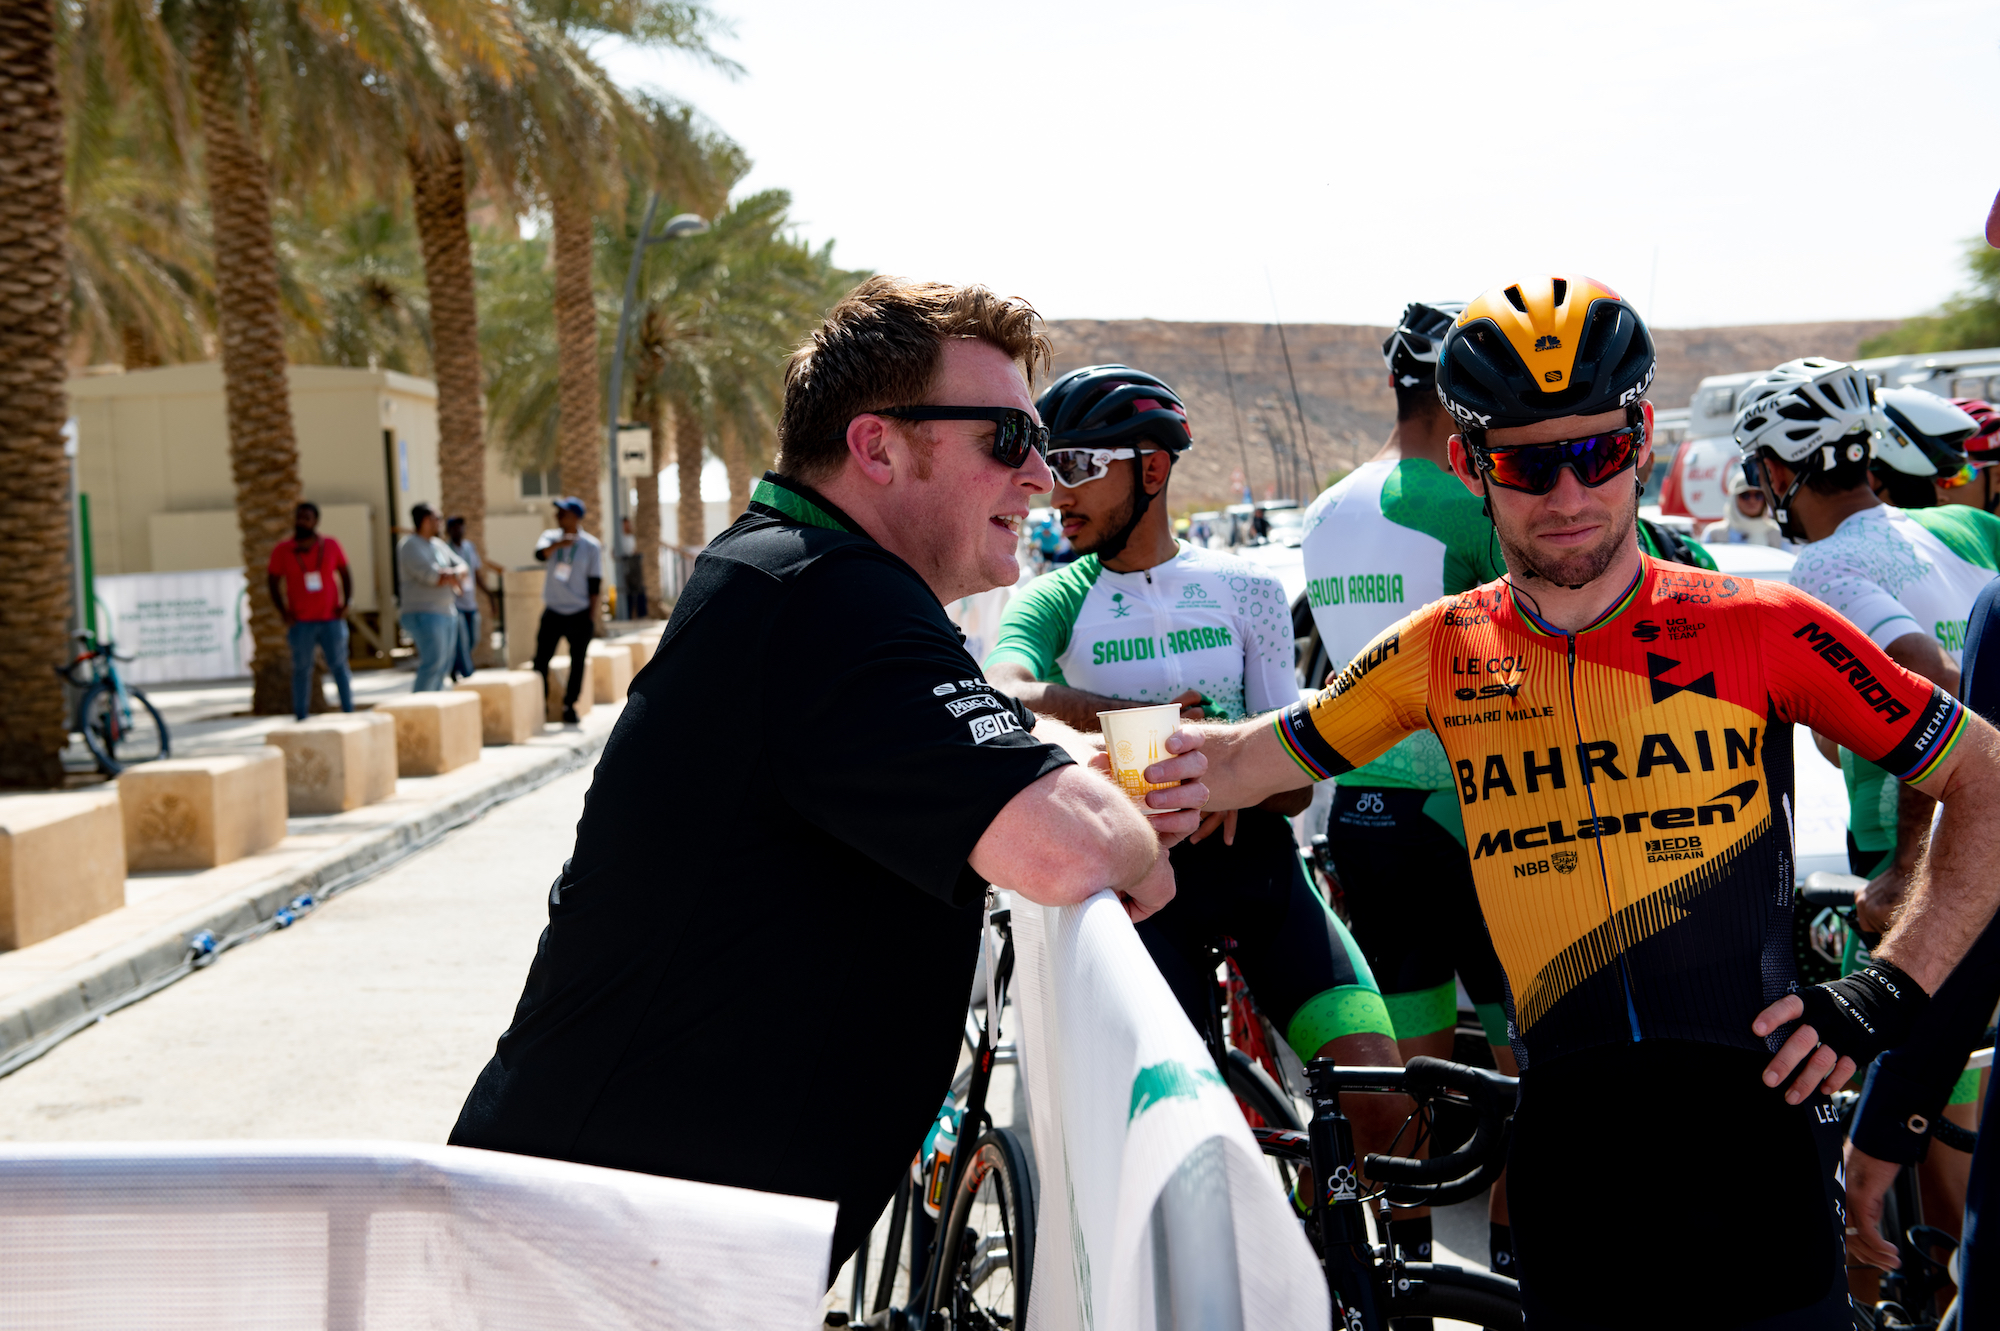 Mark Cavendish: 'Rod Ellingworth always stood by me when people you thought were your friends didn't' - Cycling Weekly